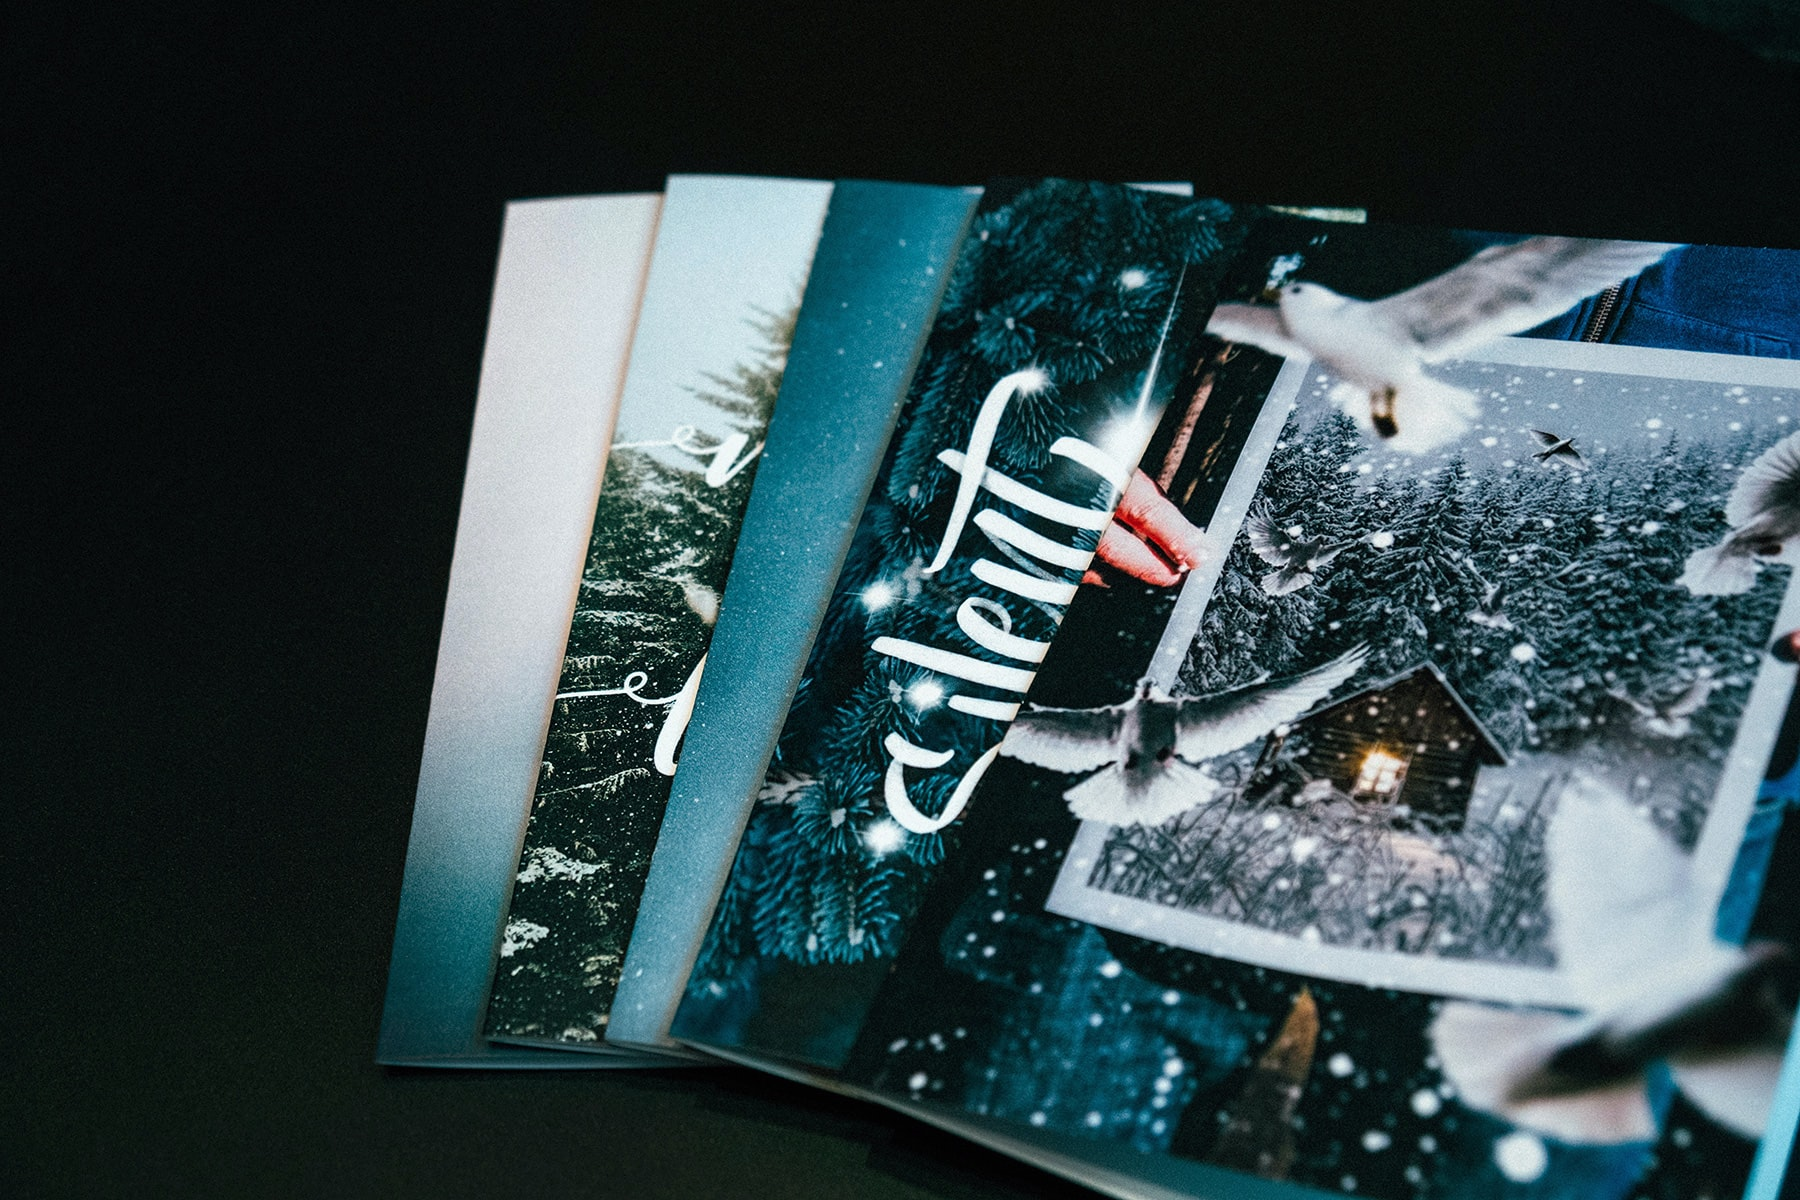 "<p>Get a card. Support a creator. <a href=""https://crew.co/store/"">Unsplash Holiday Cards</a> were one-of-a-kind cards made by Unsplash creators. All profits were split with contributors.</p>"